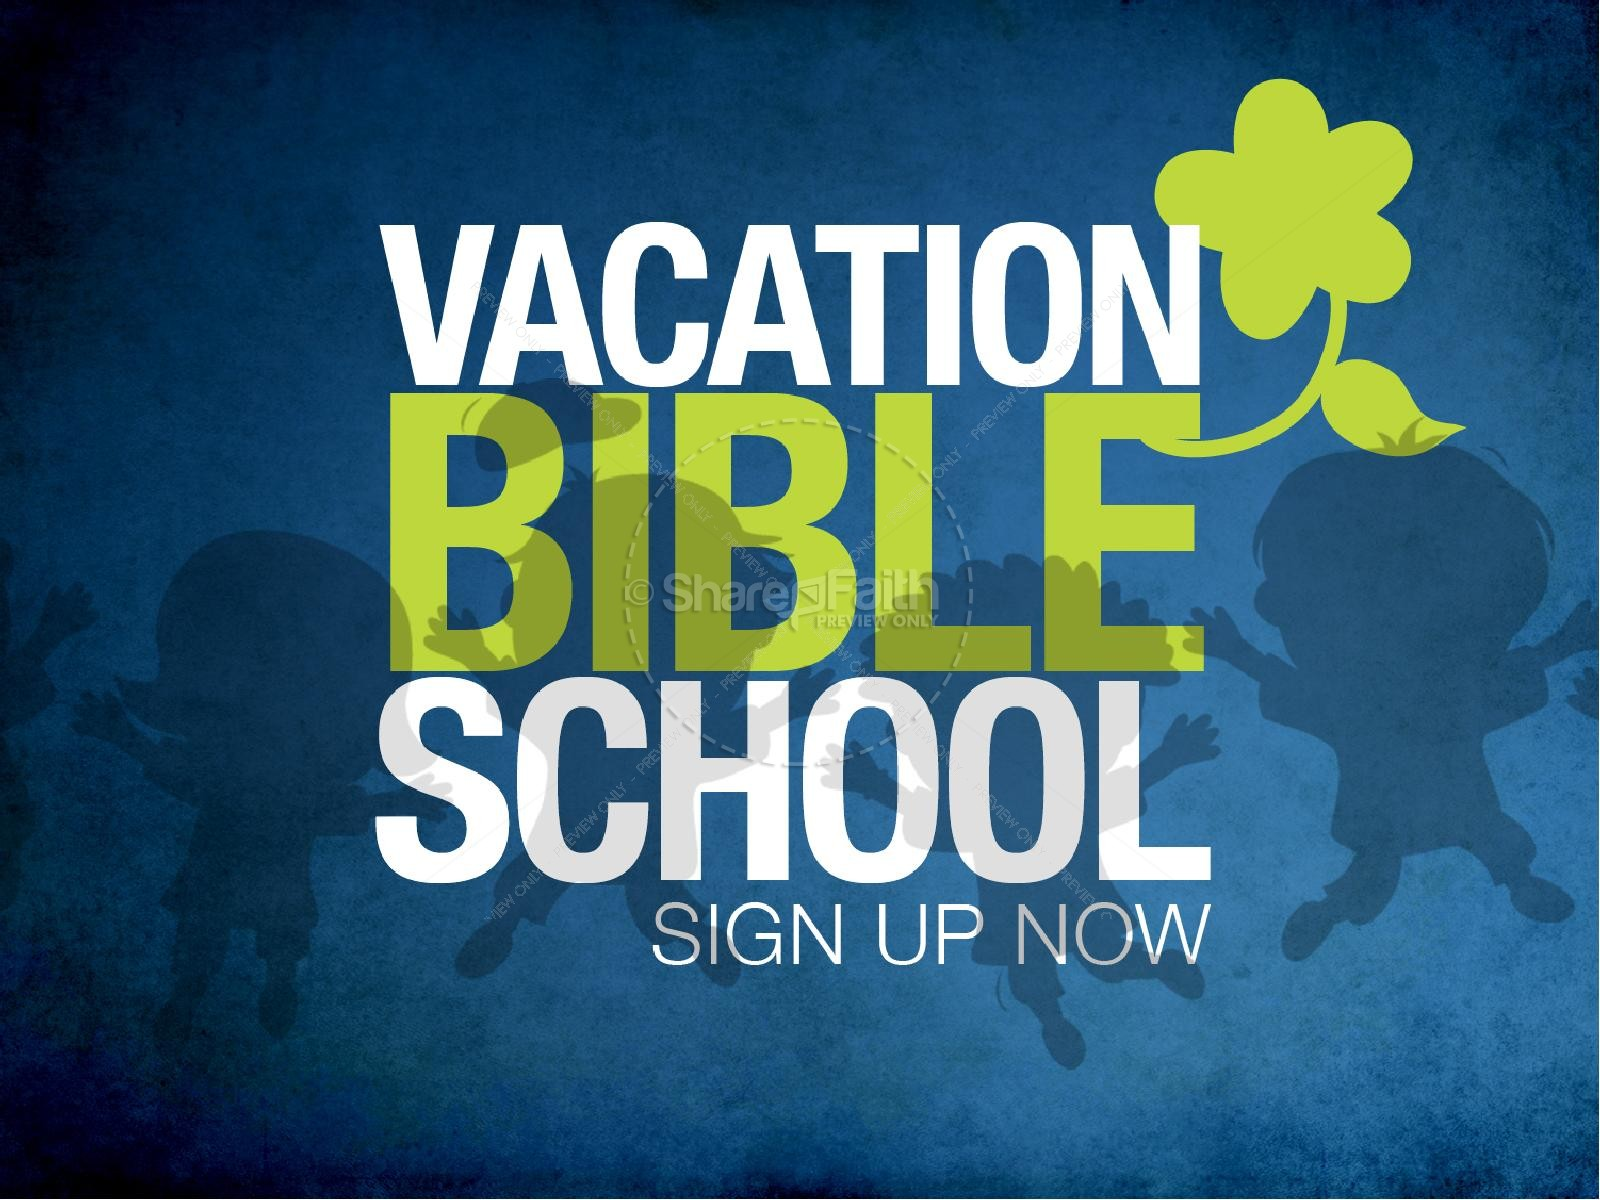 Vacation bible school powerpoint template powerpoint sermons vacation bible school powerpoint template toneelgroepblik